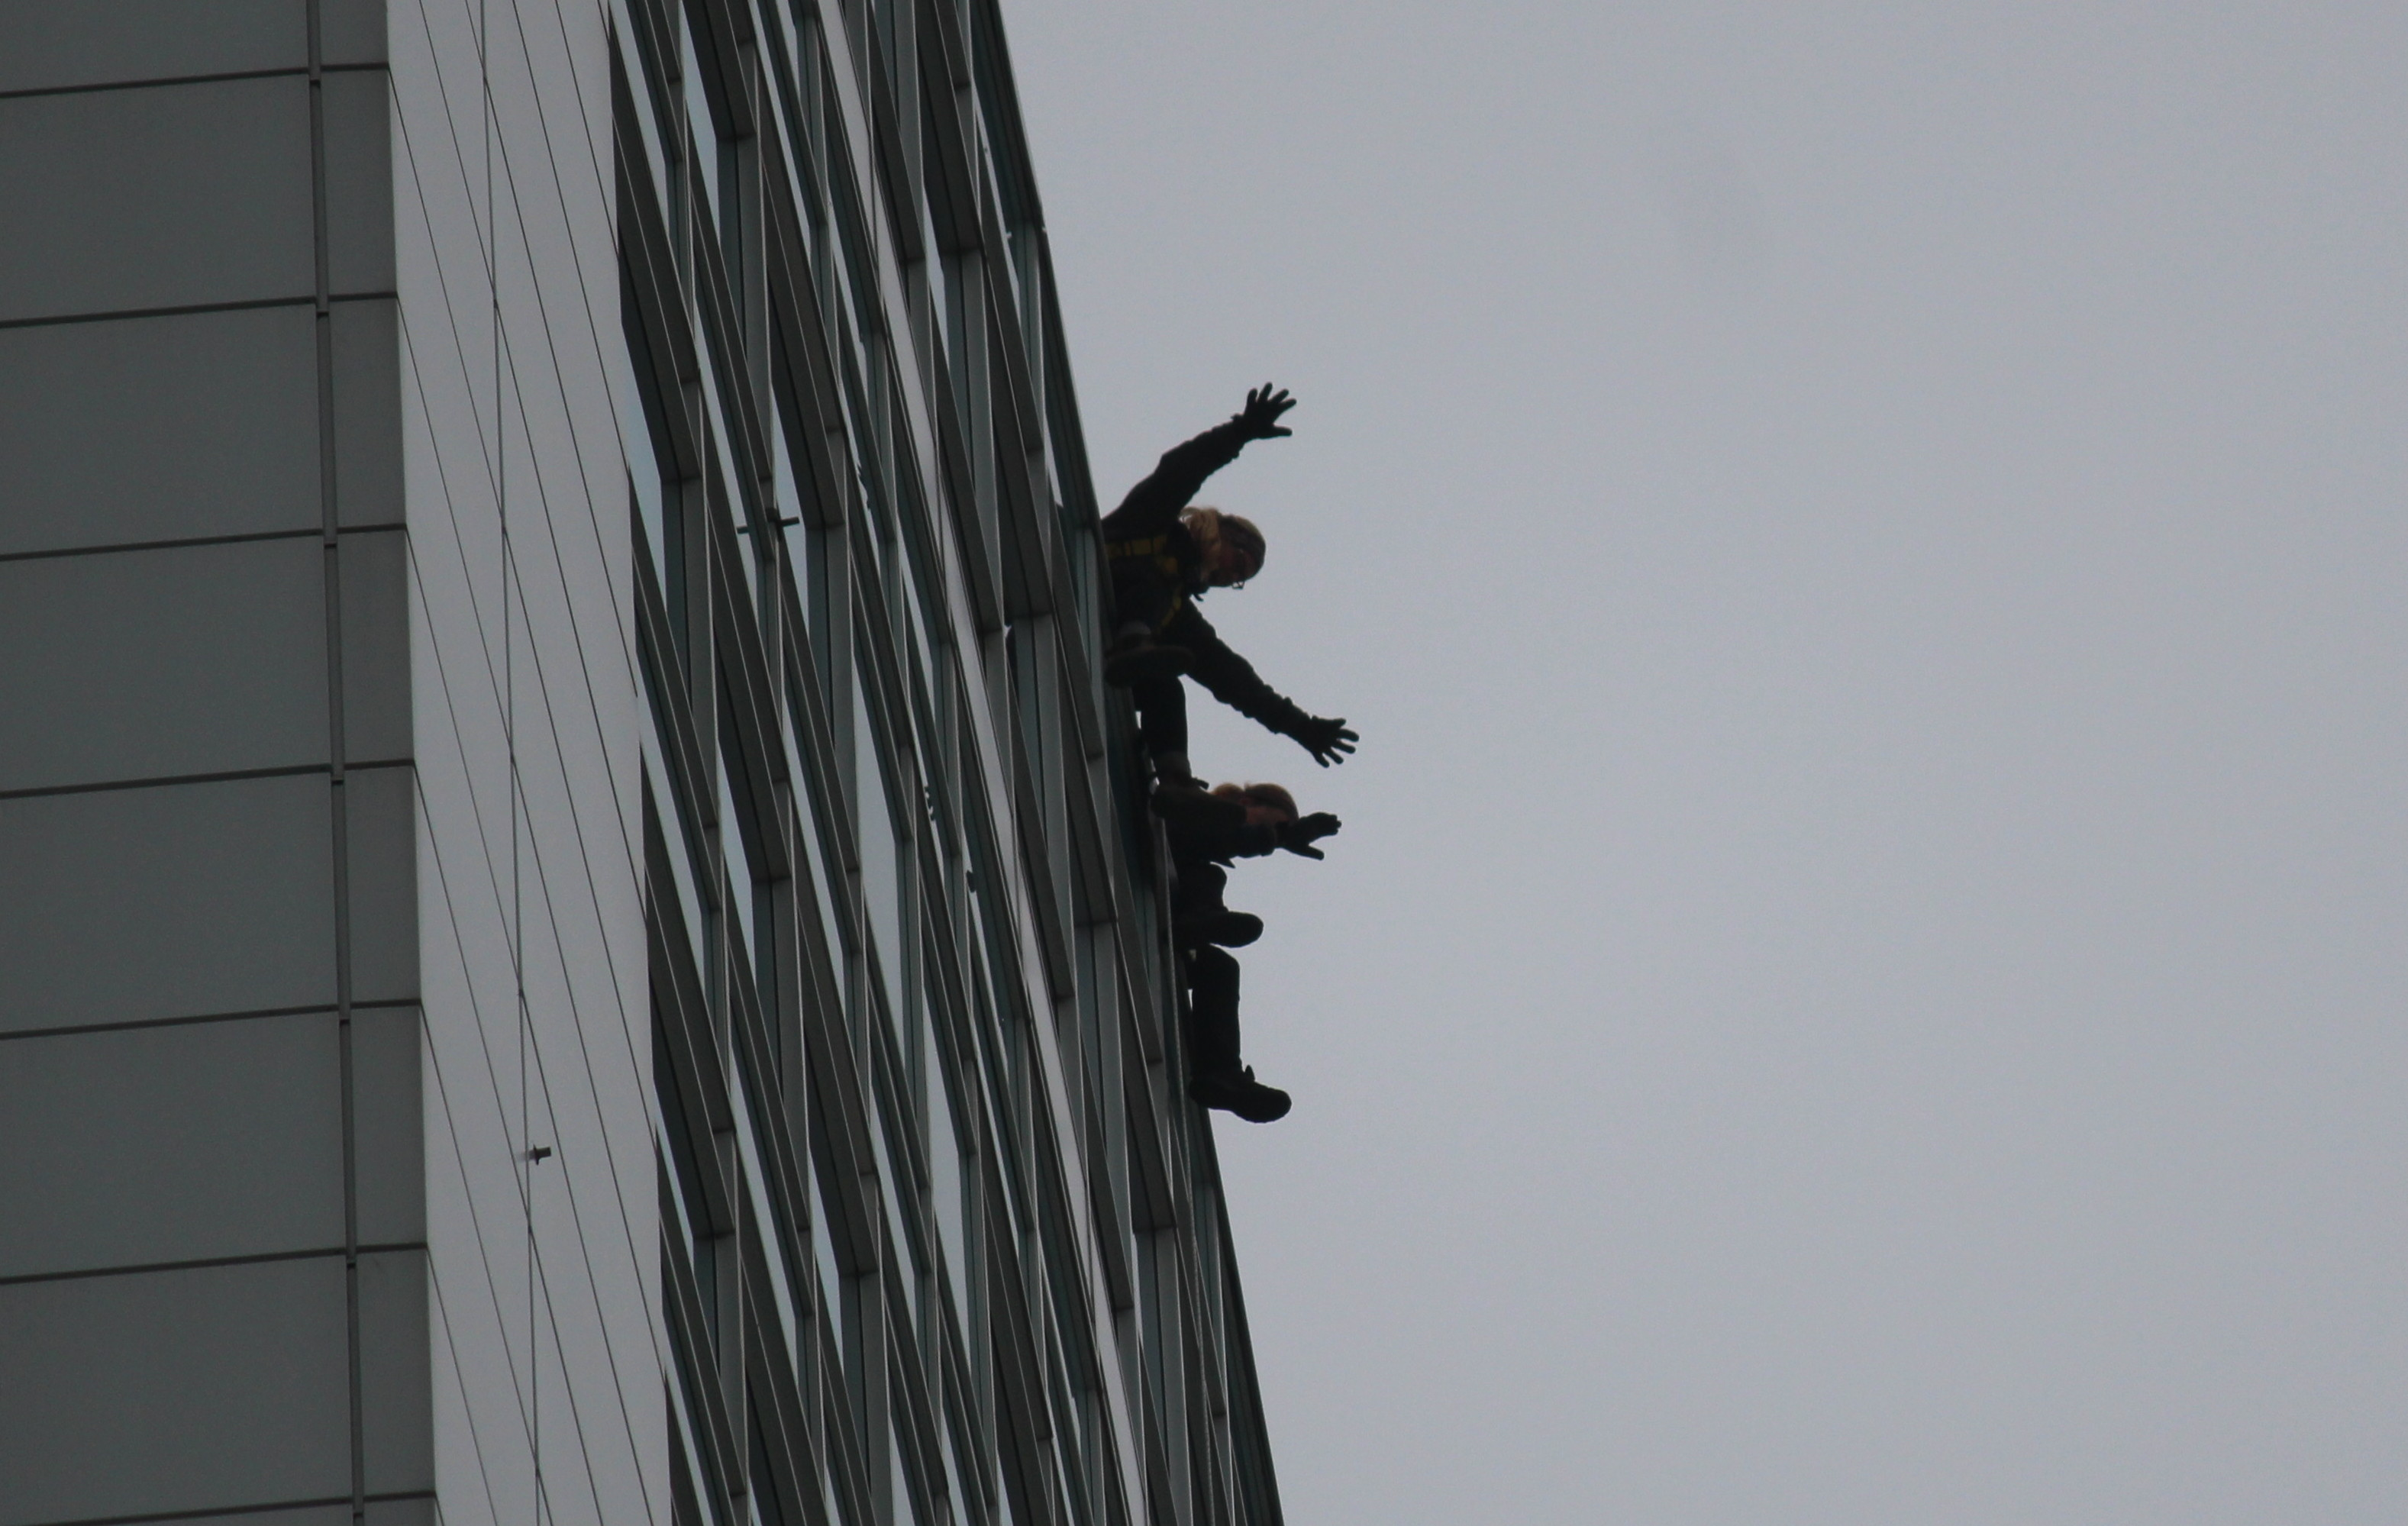 People rappel down the side of Caesars Windsor to raise money for local Easter Seals families through the charity's Drop Zone event, October 6, 2015. (Photo by Mike Vlasveld)